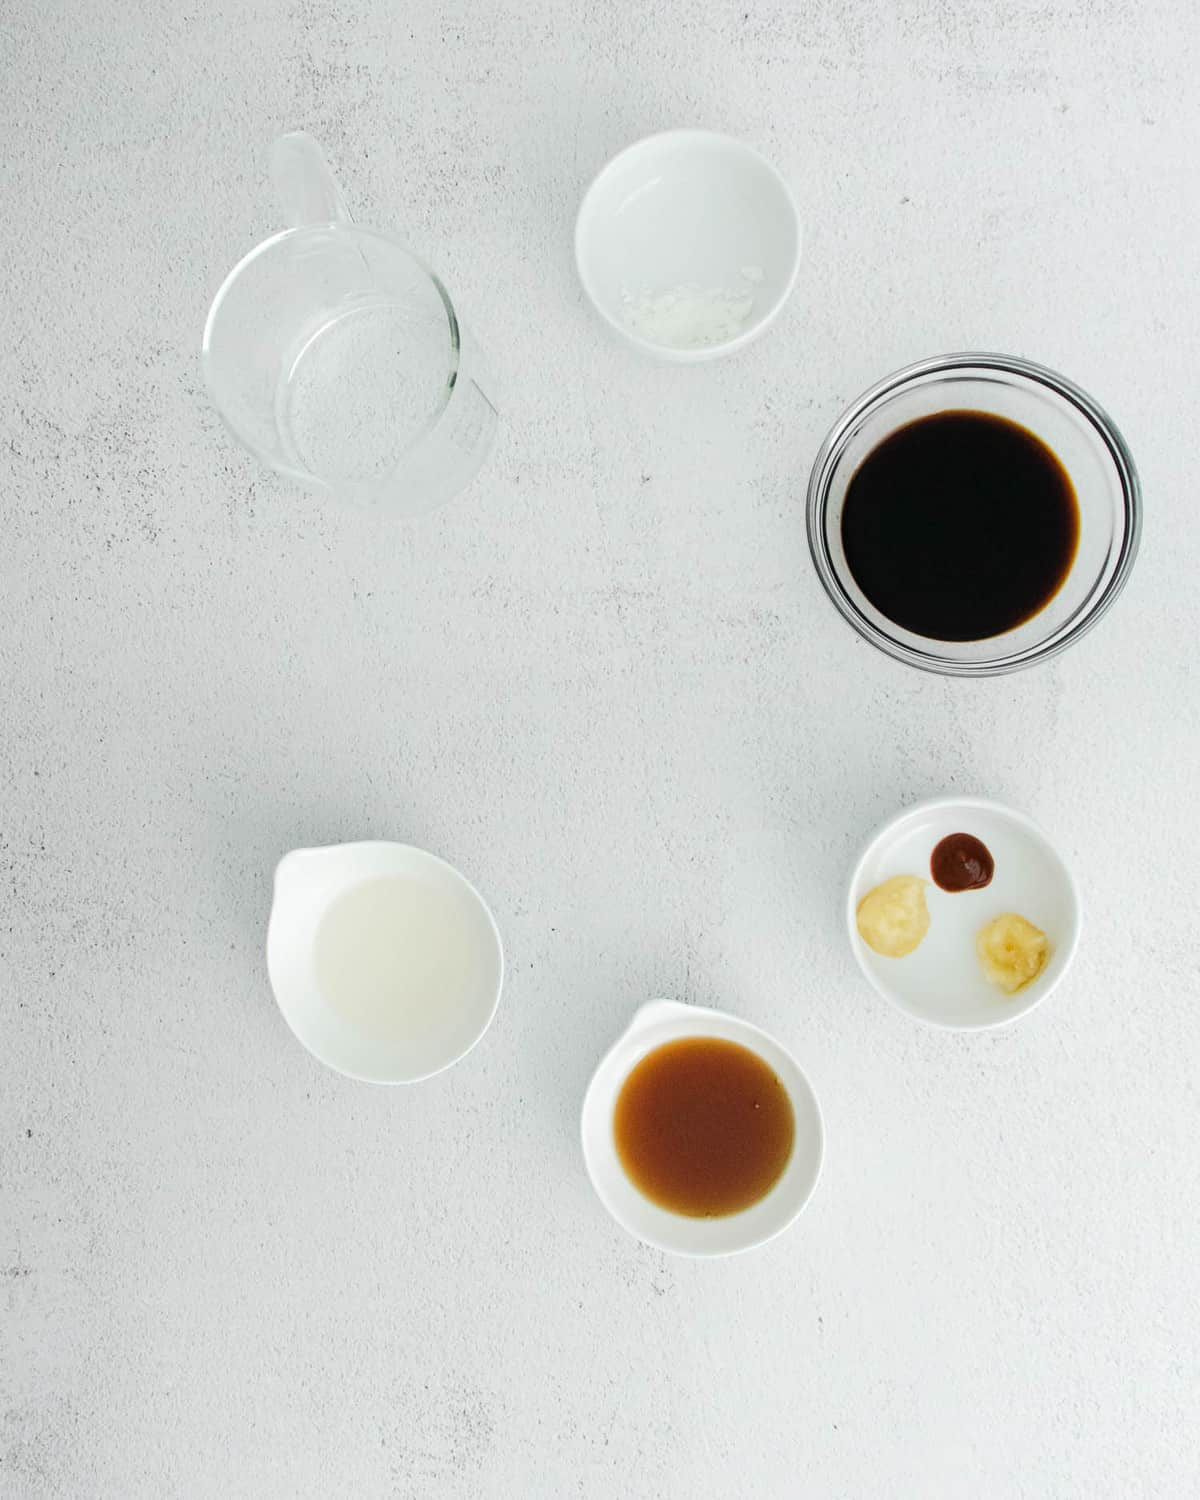 Sauce ingredients in small bowls on a light grey surface.